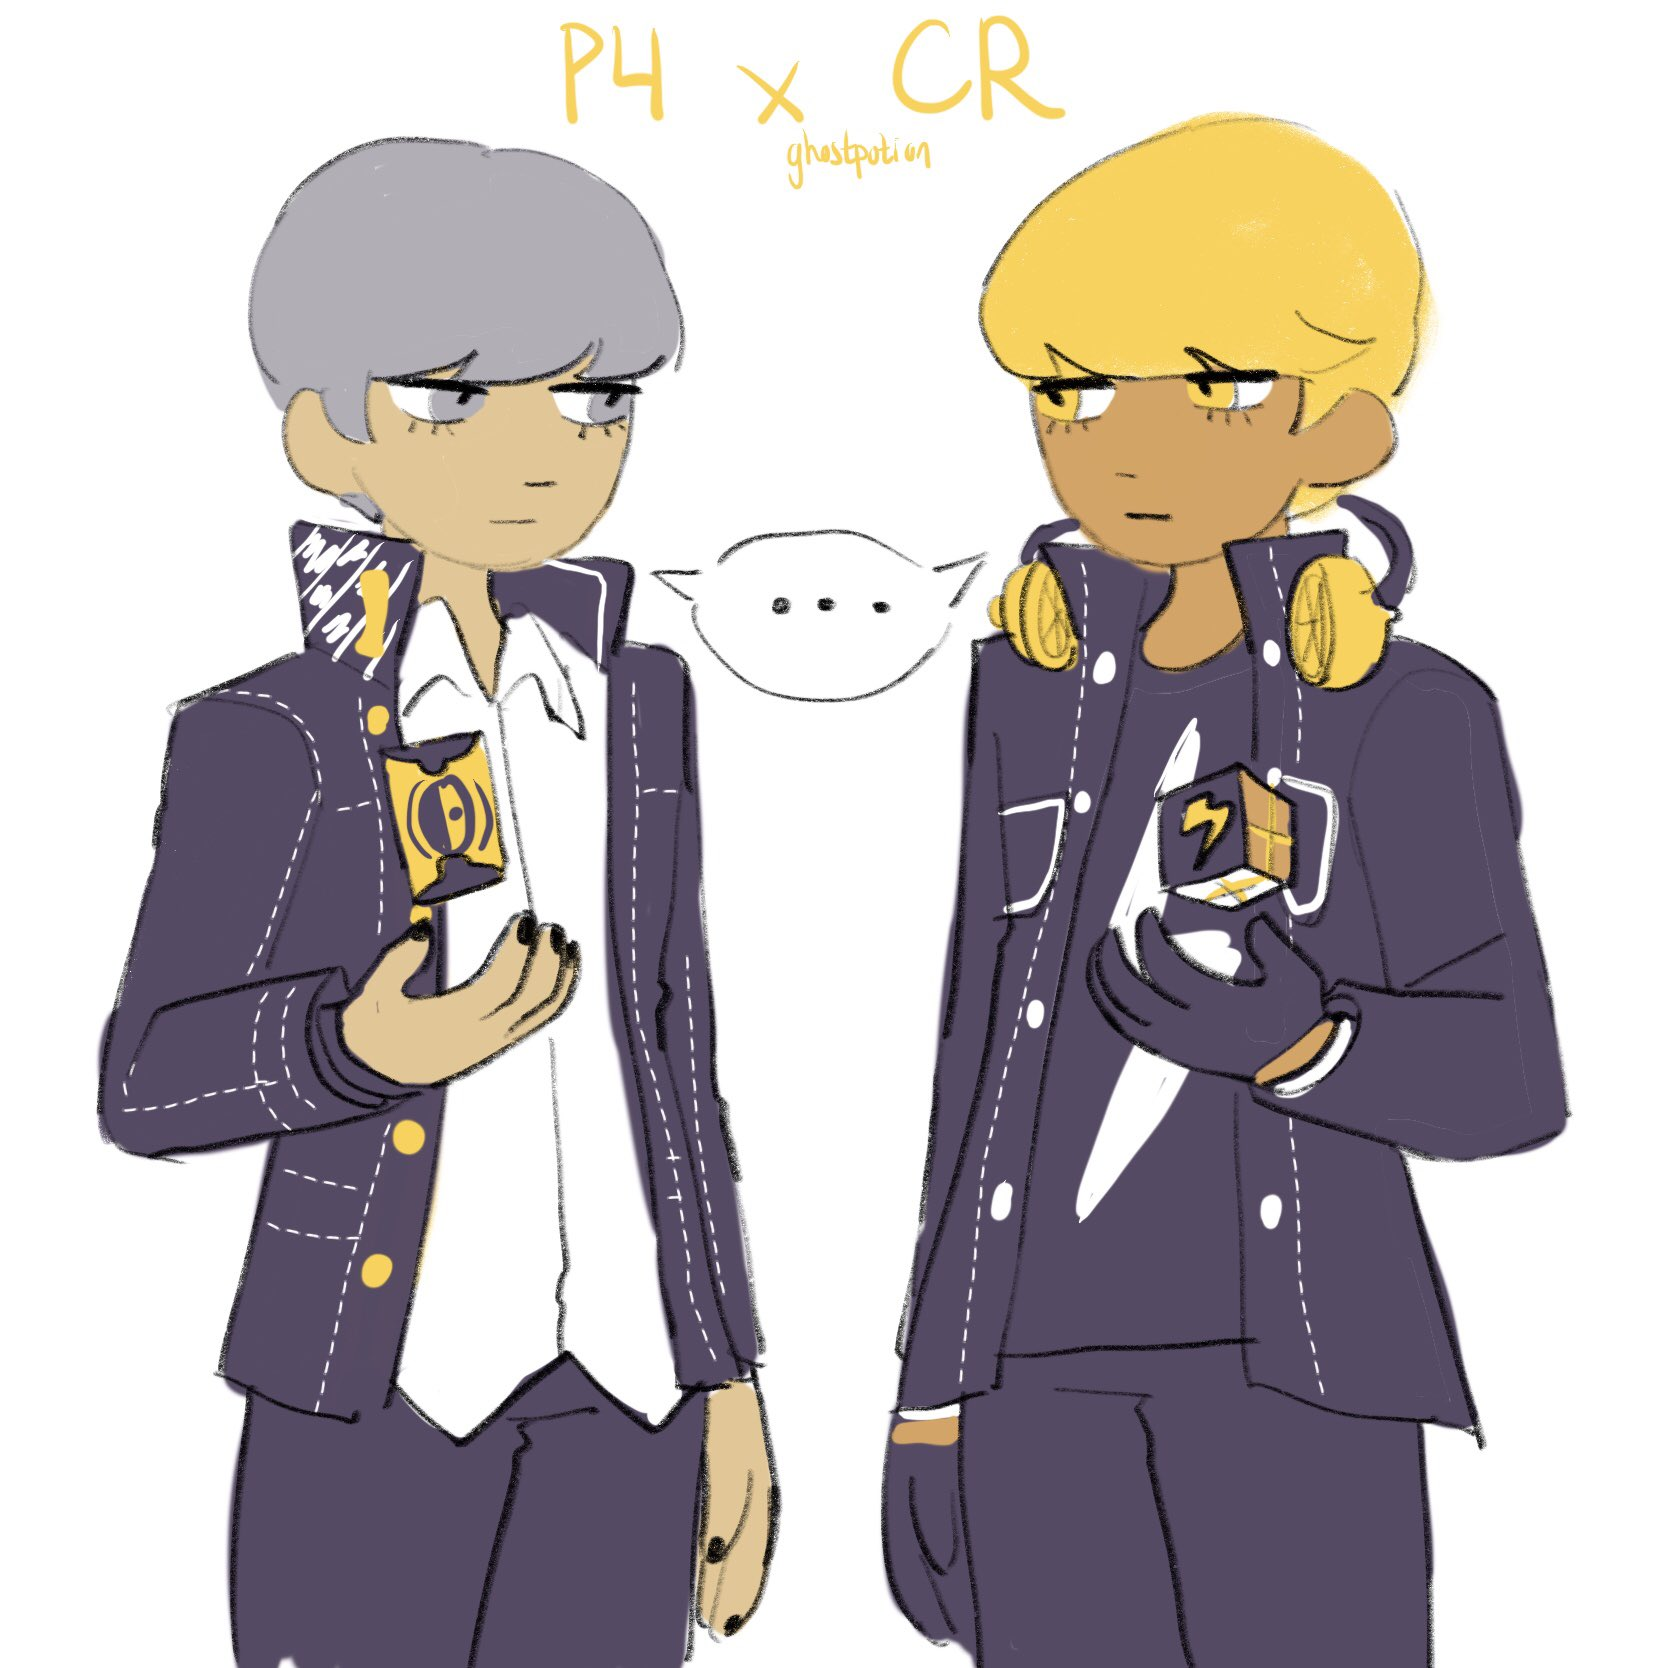 Lemon cookies new skin only confirmed my suspicions #persona4 #cookierun https://t.co/mgESihpCSJ